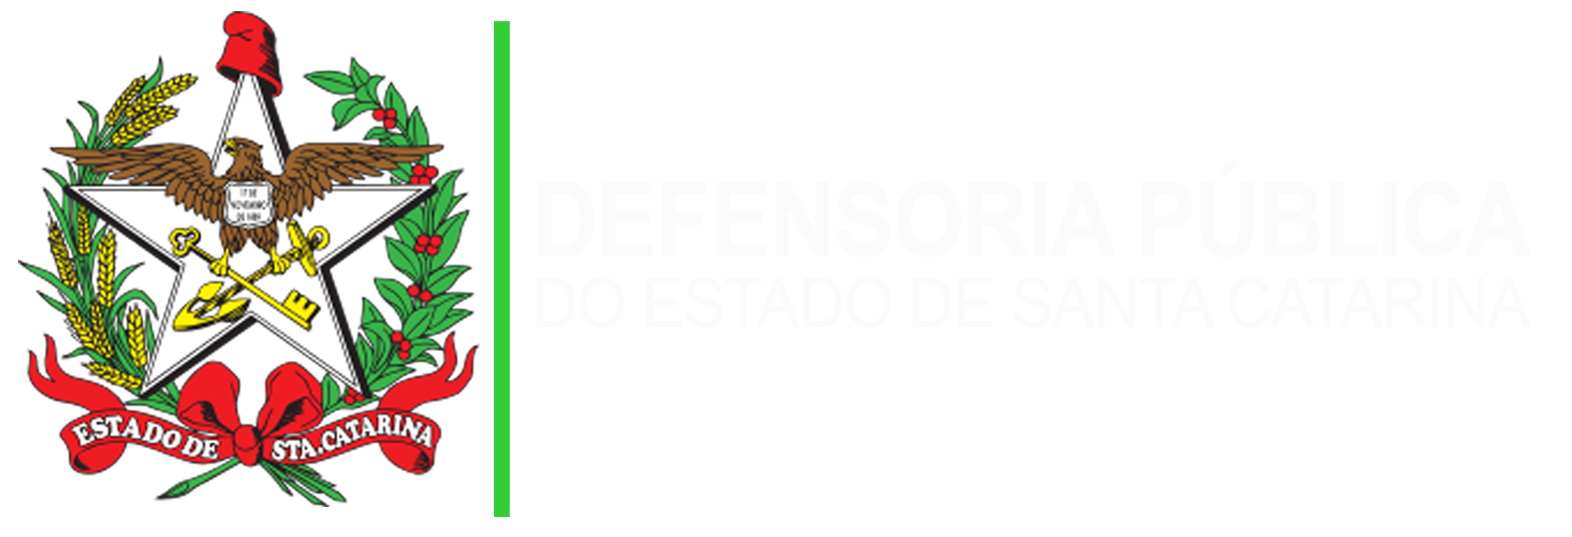 Defensoria Pública do Estado de Santa Catarina